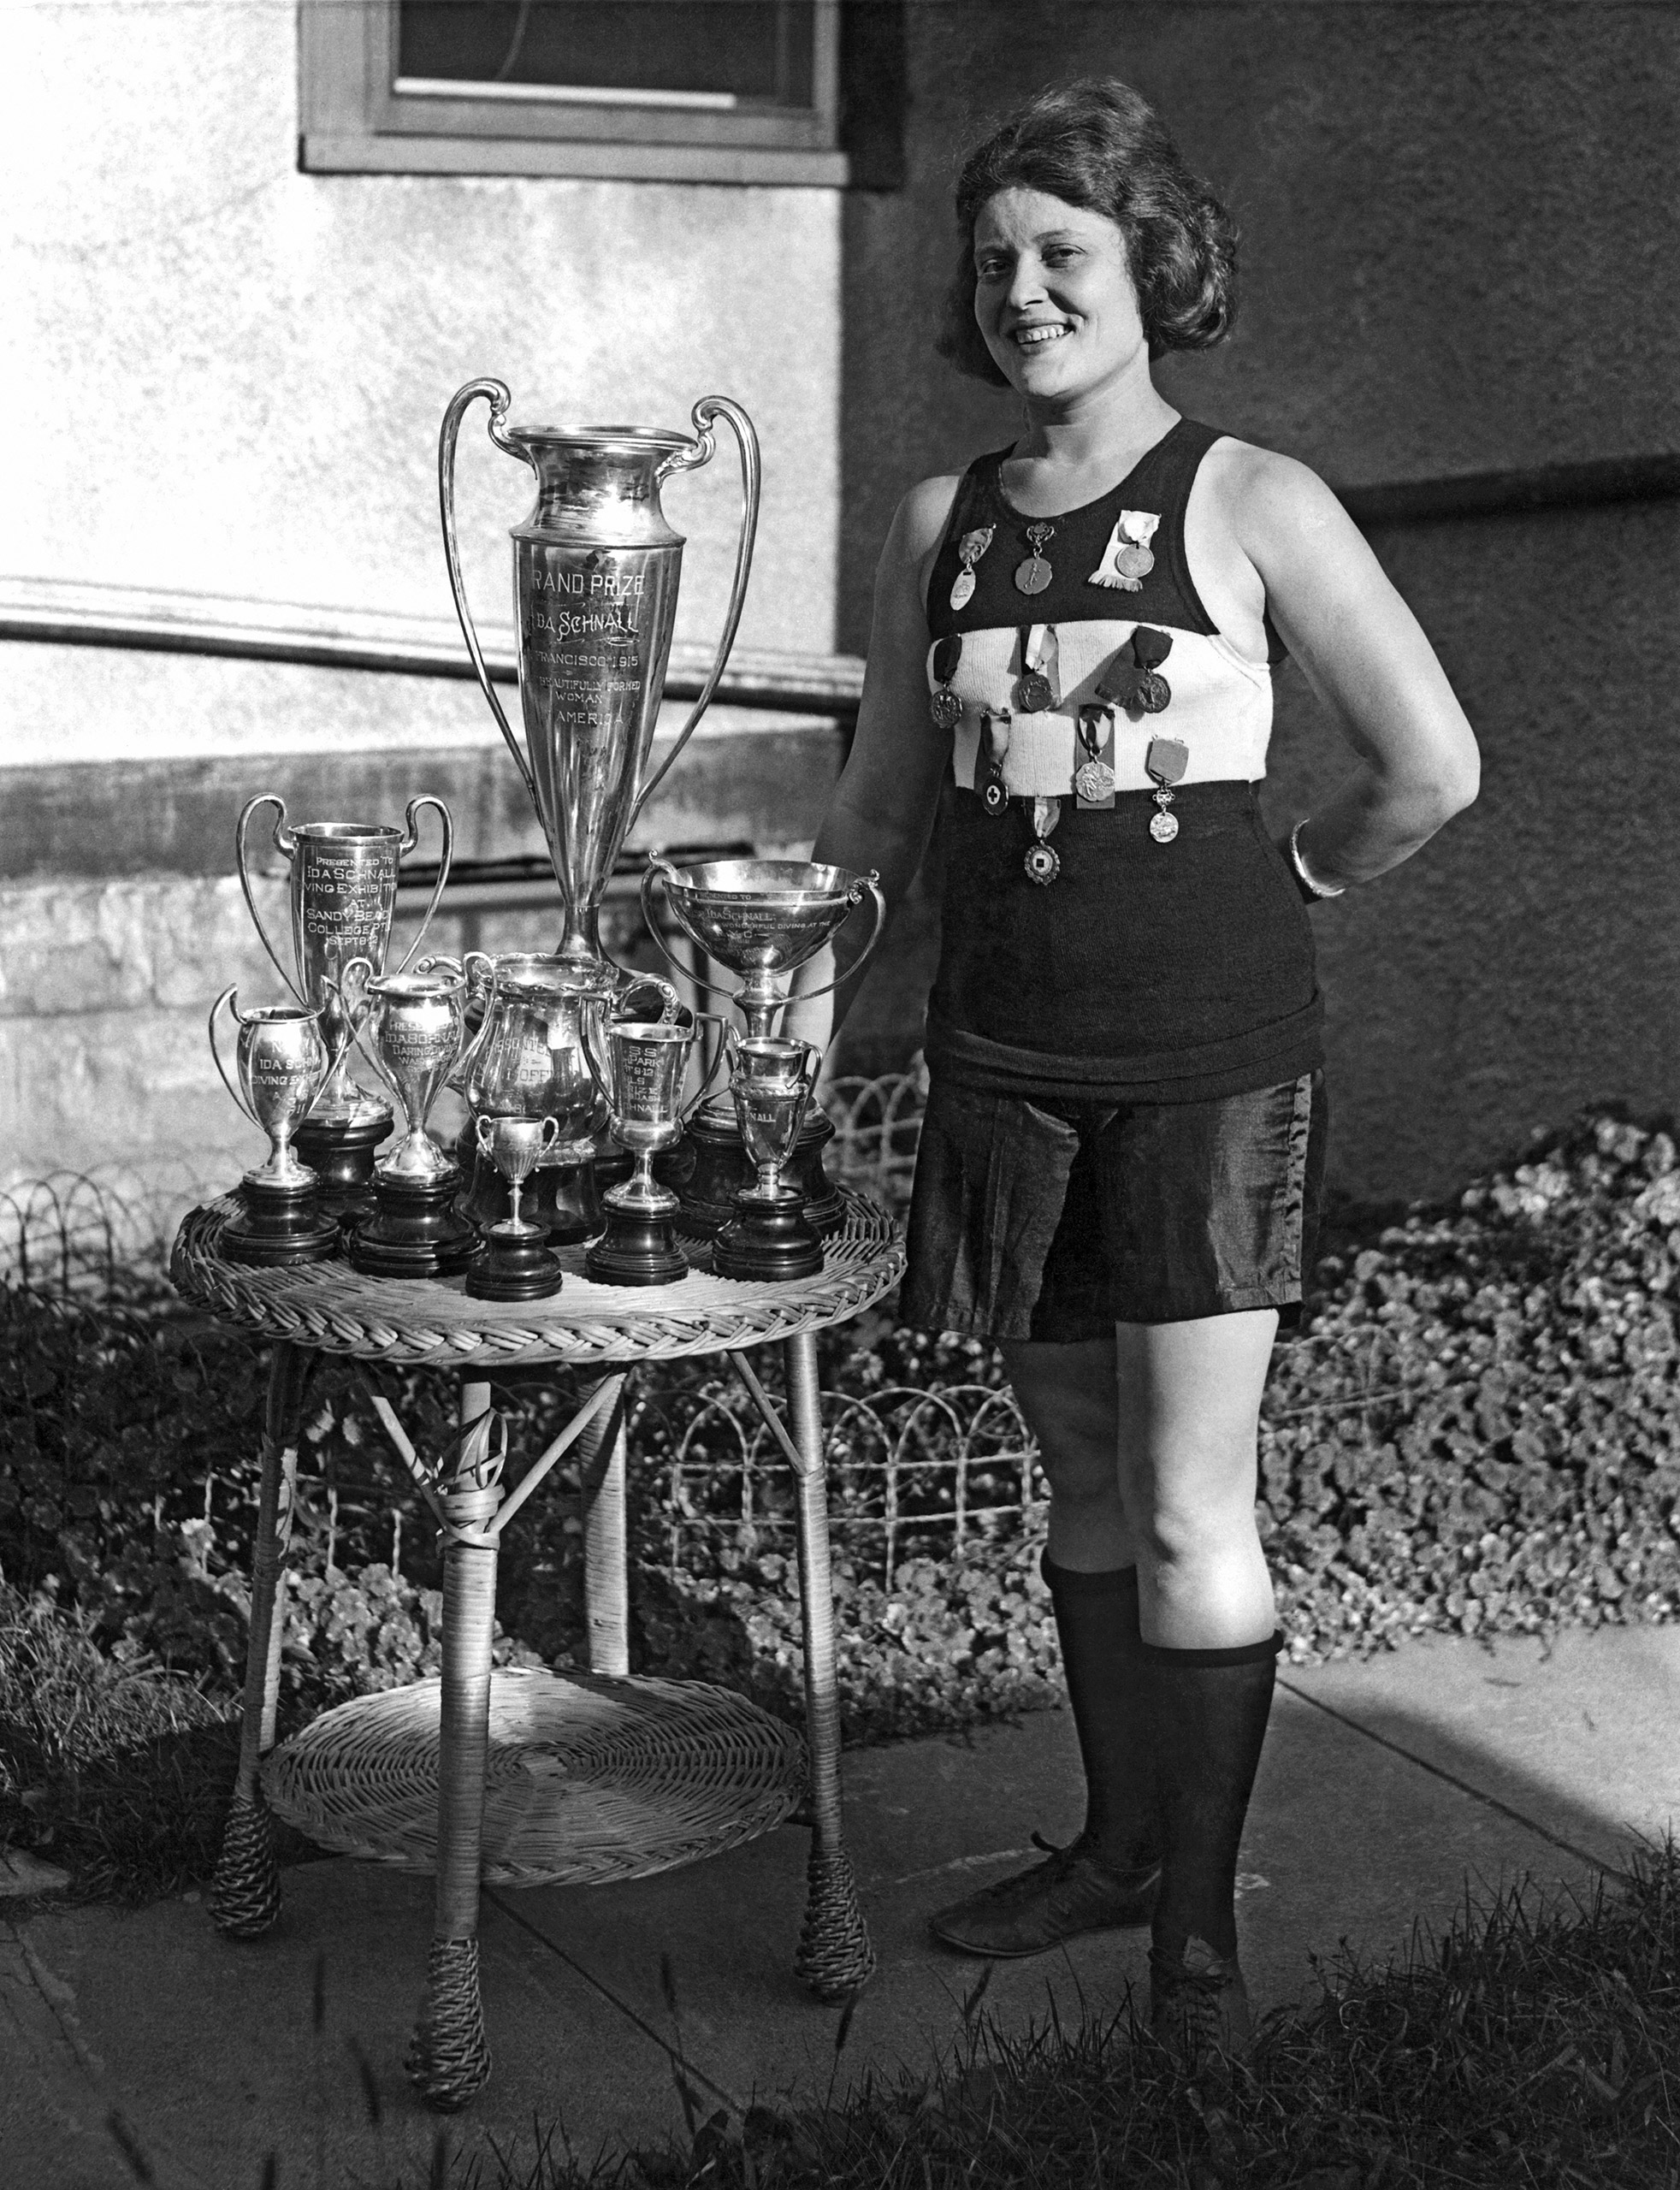 Ida Schnall, America's champion athlete. She was a swimmer, Olympic diver, baseball player, and fitness instructor. The tall trophy was awarded in San Francisco in 1915 for being America's most beautifully formed woman.